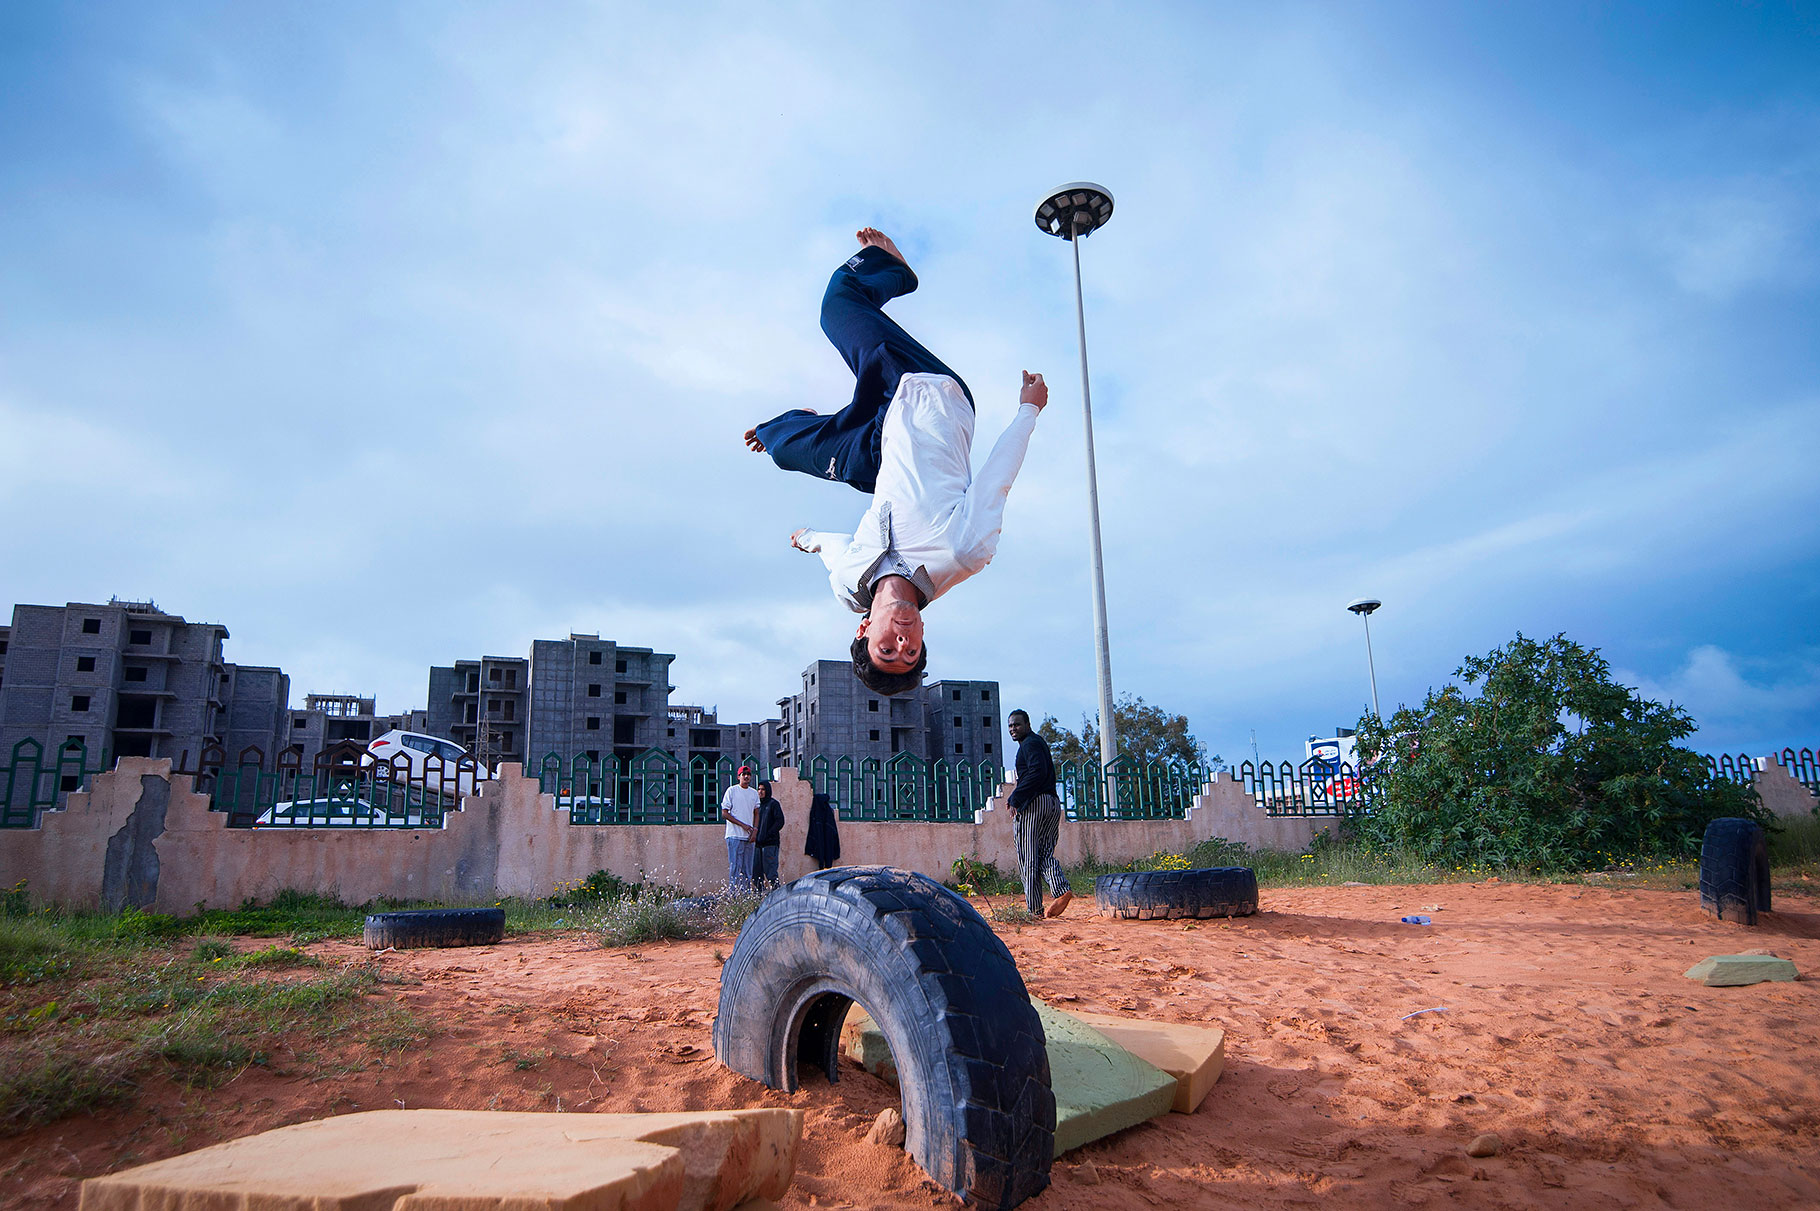 LIBYA: Breakdance and Parkour - Claudia Wiens Photography